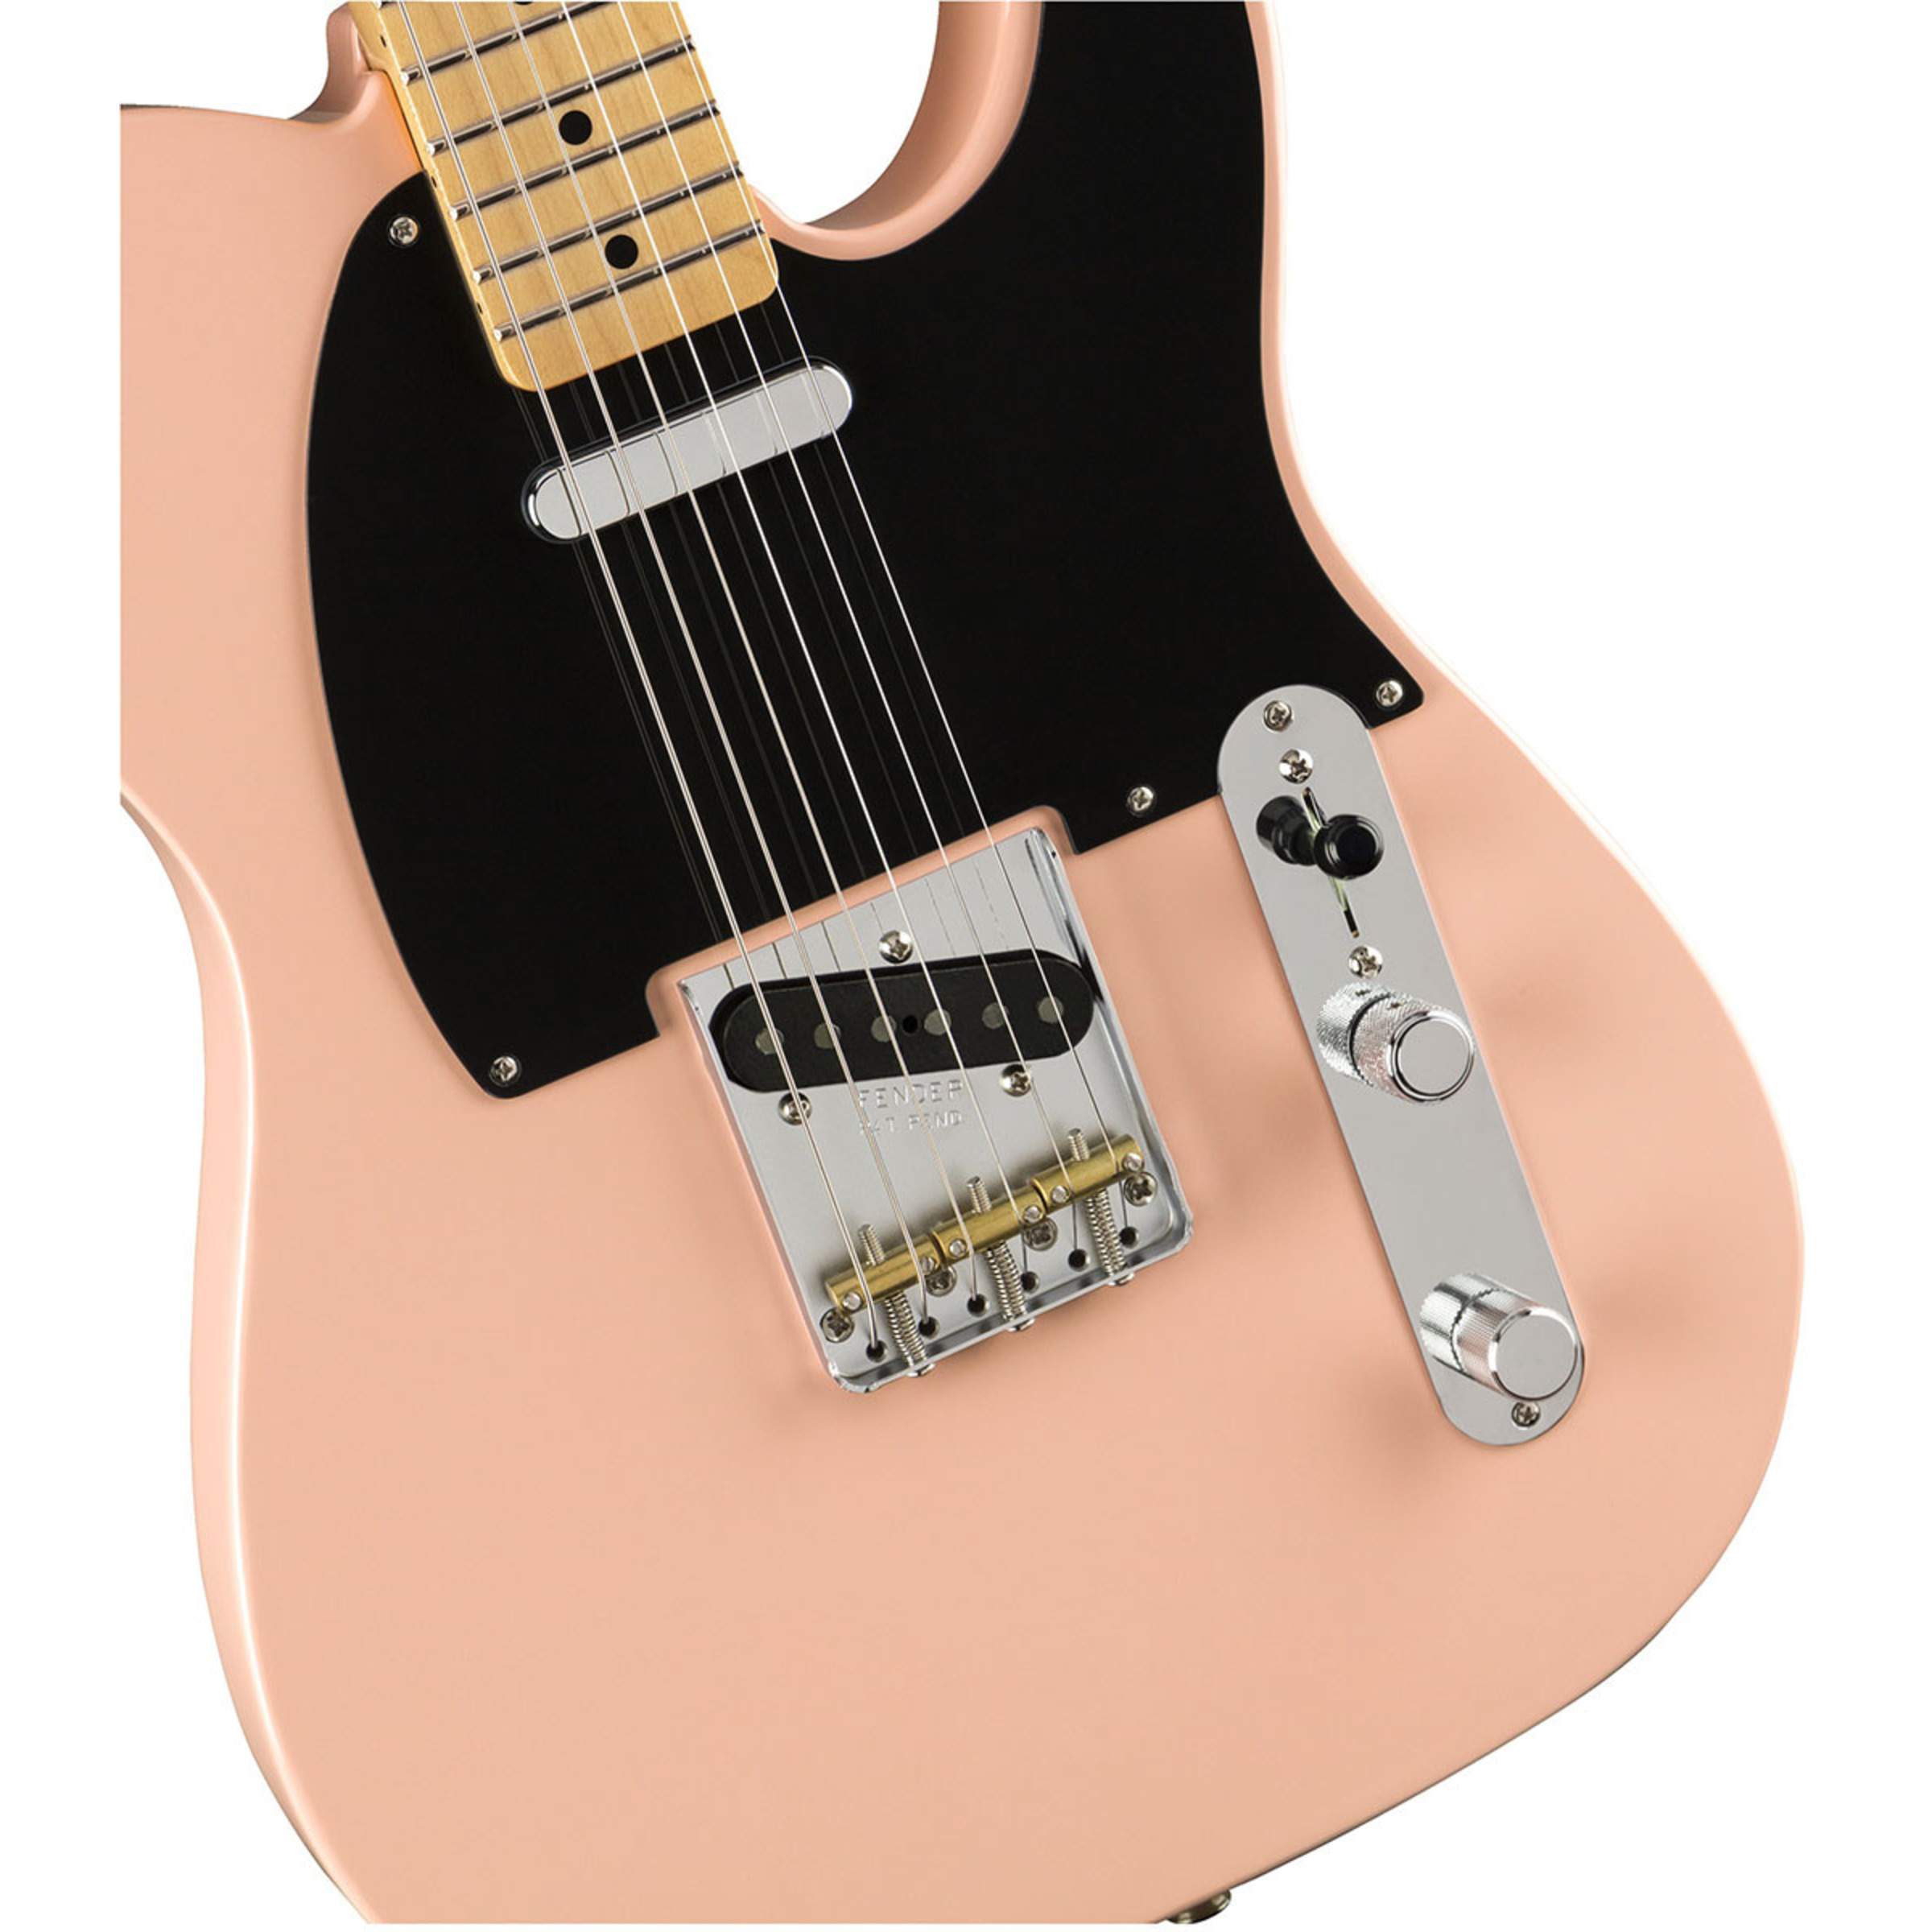 fender limited edition classic player baja tele shell pink giggear. Black Bedroom Furniture Sets. Home Design Ideas